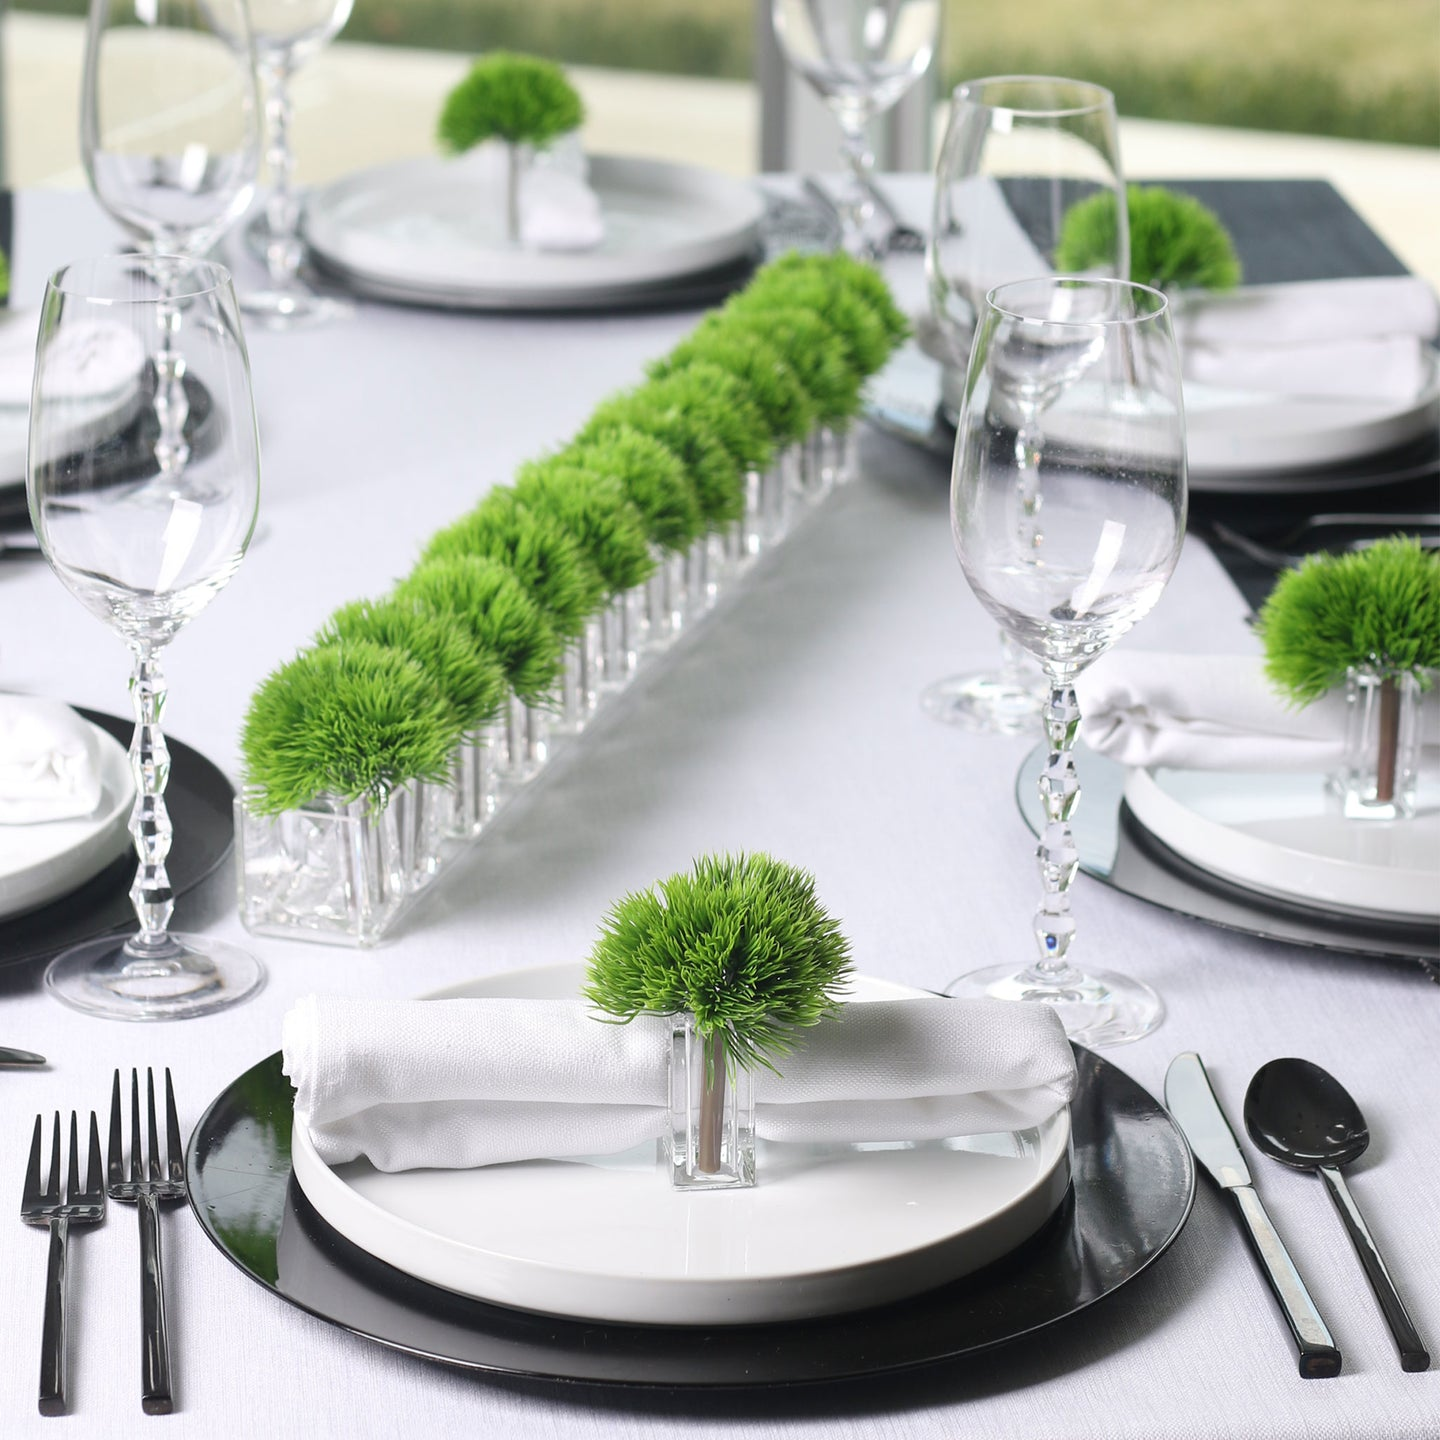 Spring Grass Store+Decor Napkin Ring System